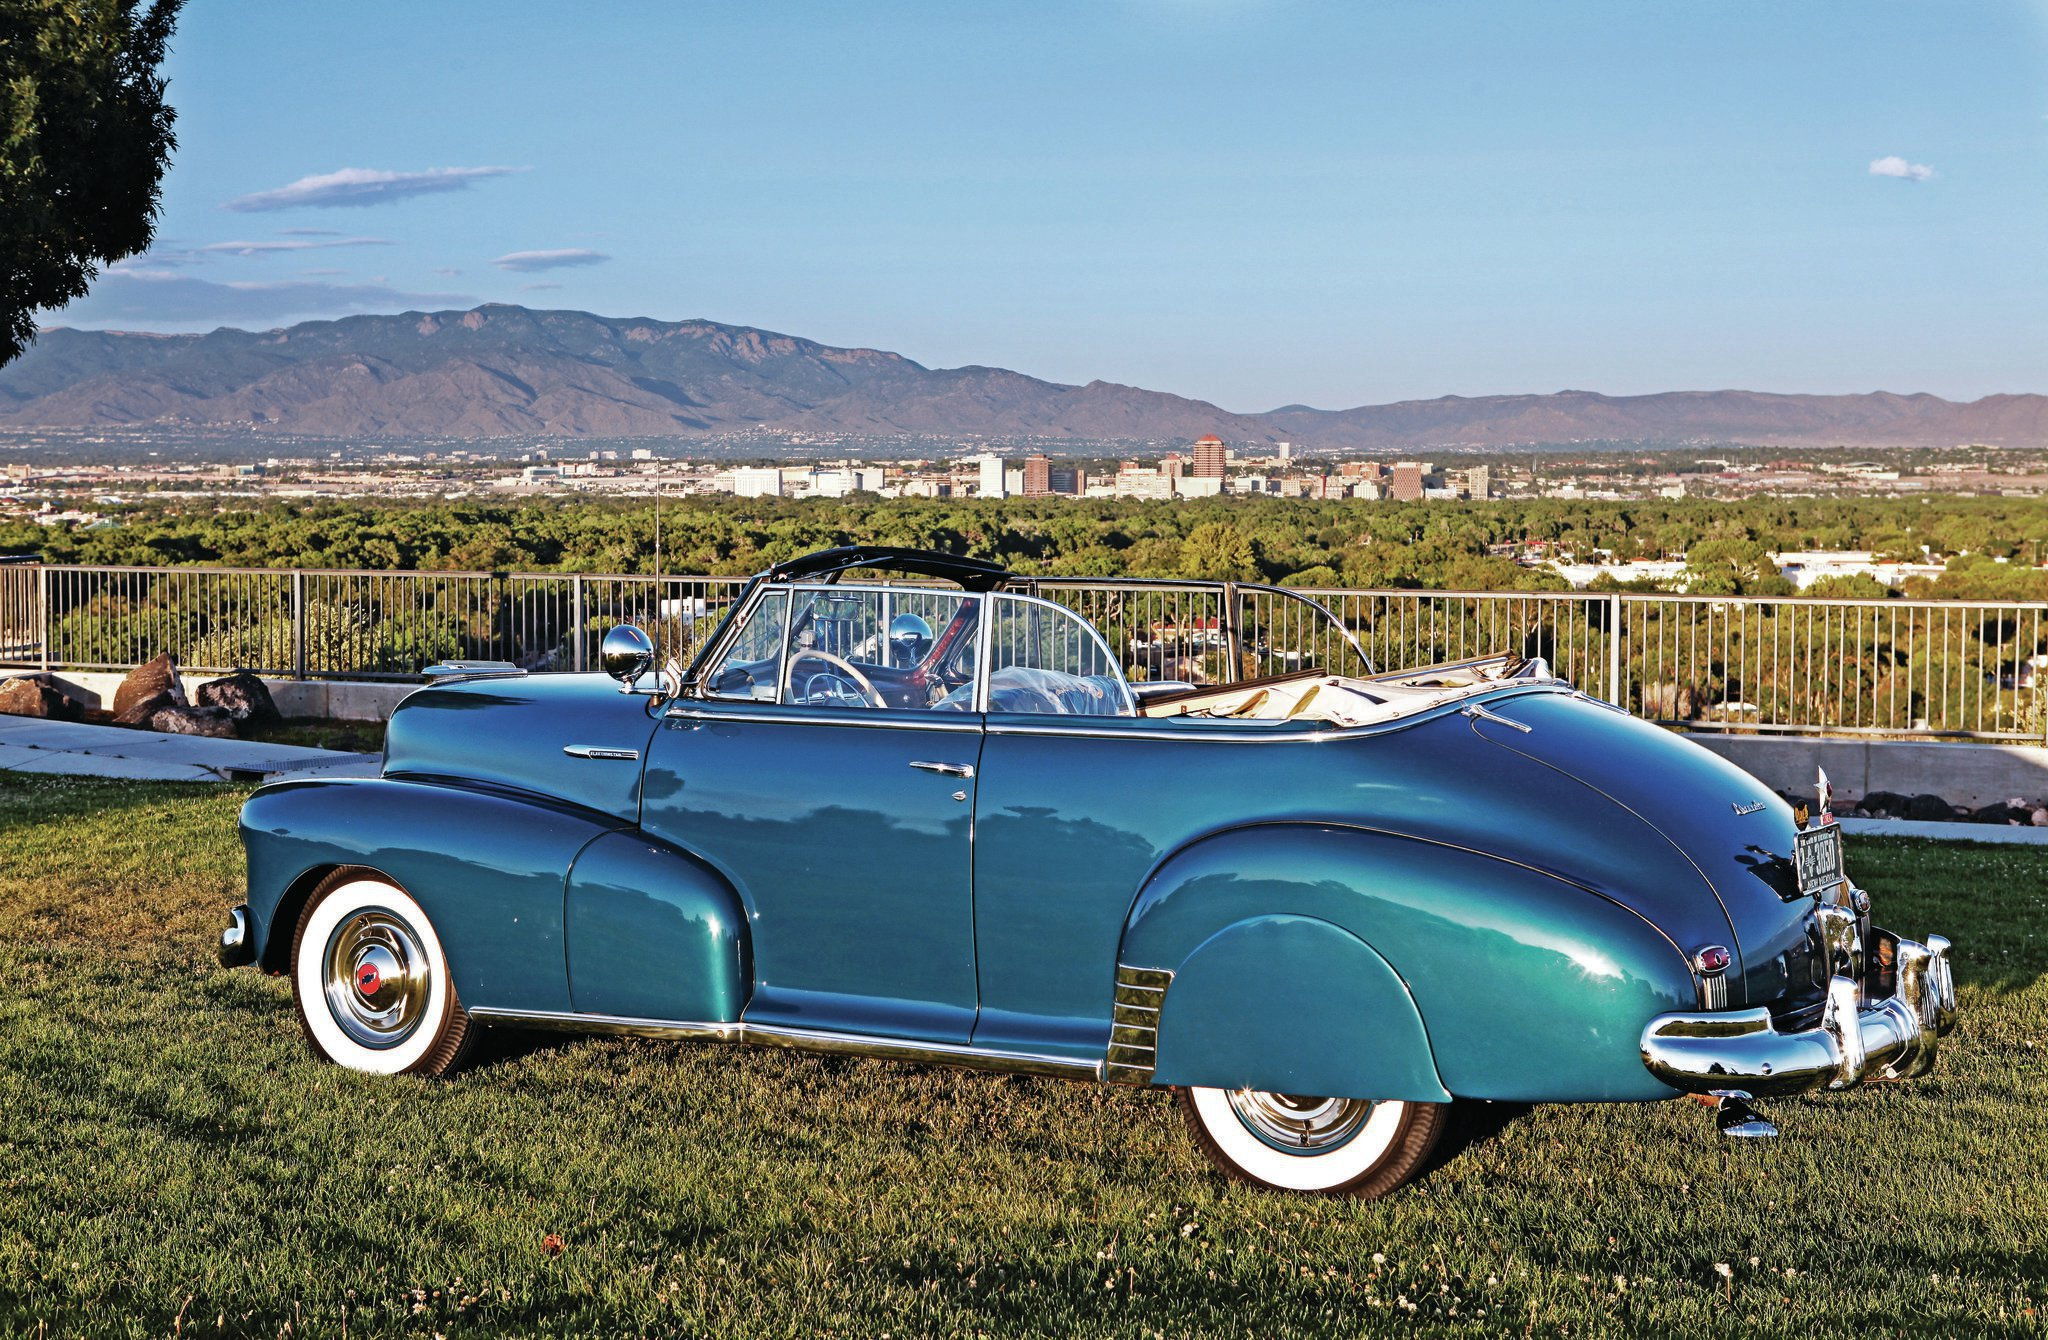 1948 Chevrolet Fleetmaster Convertible Bomb 1948